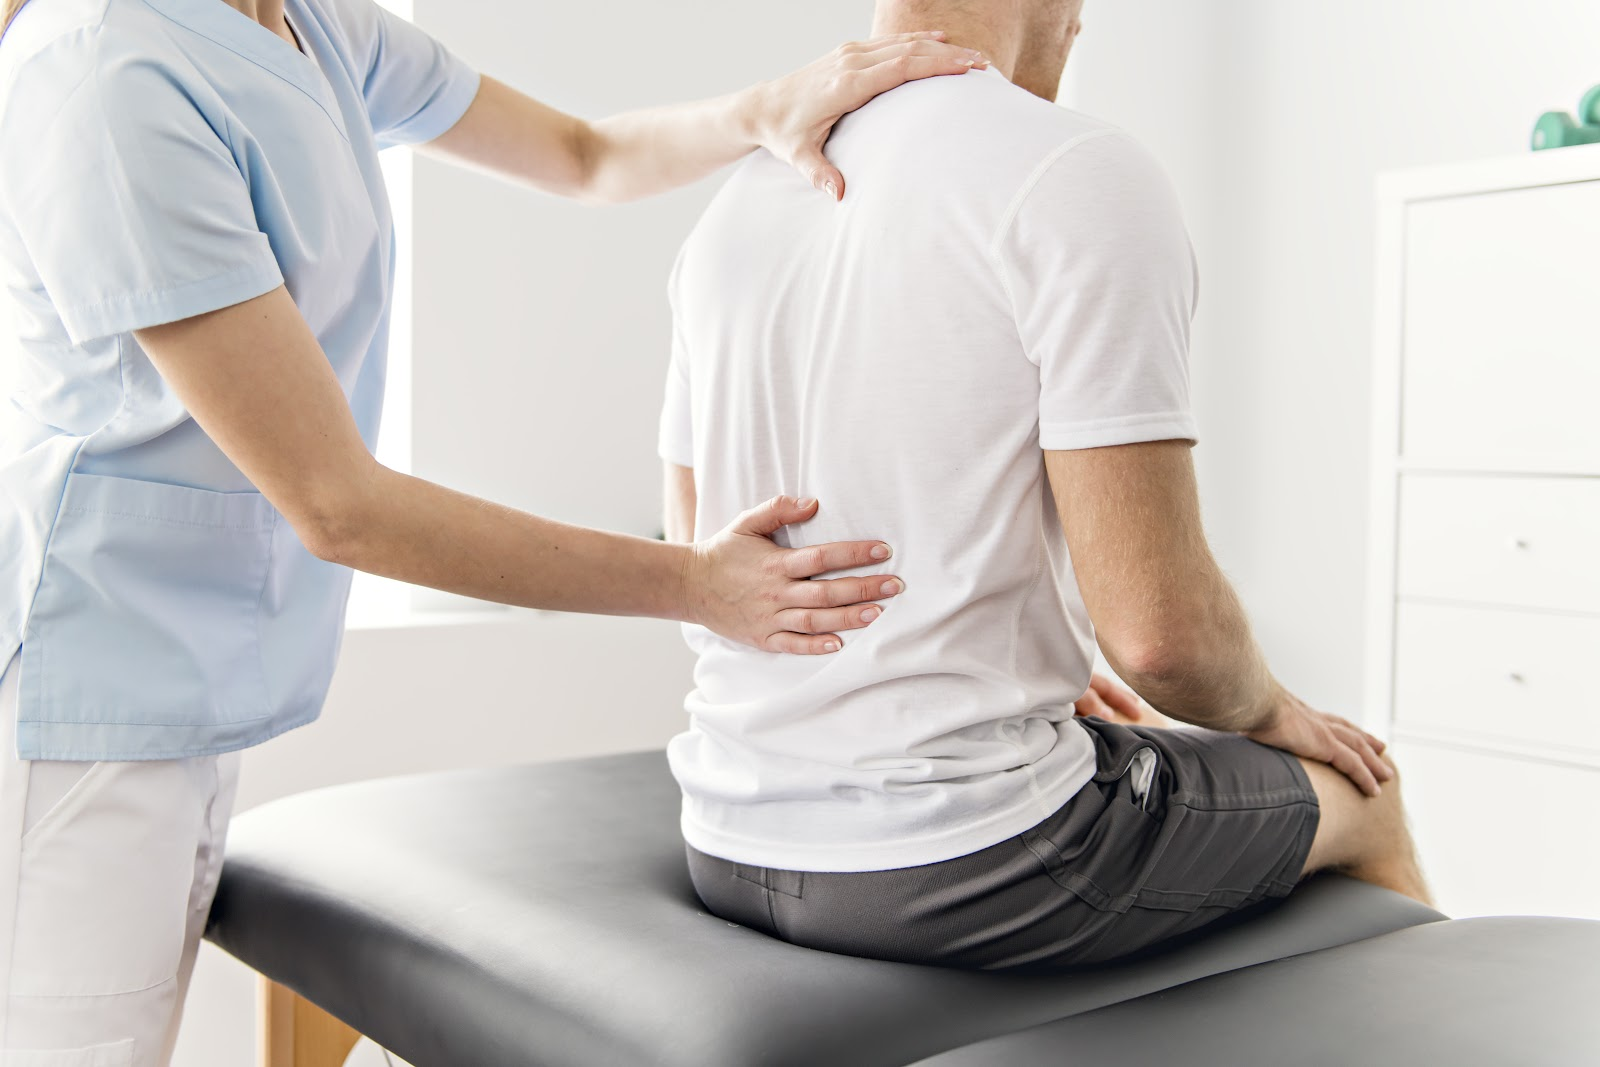 A small percentage of lower back pain symptoms can be the cause of a serious medical condition